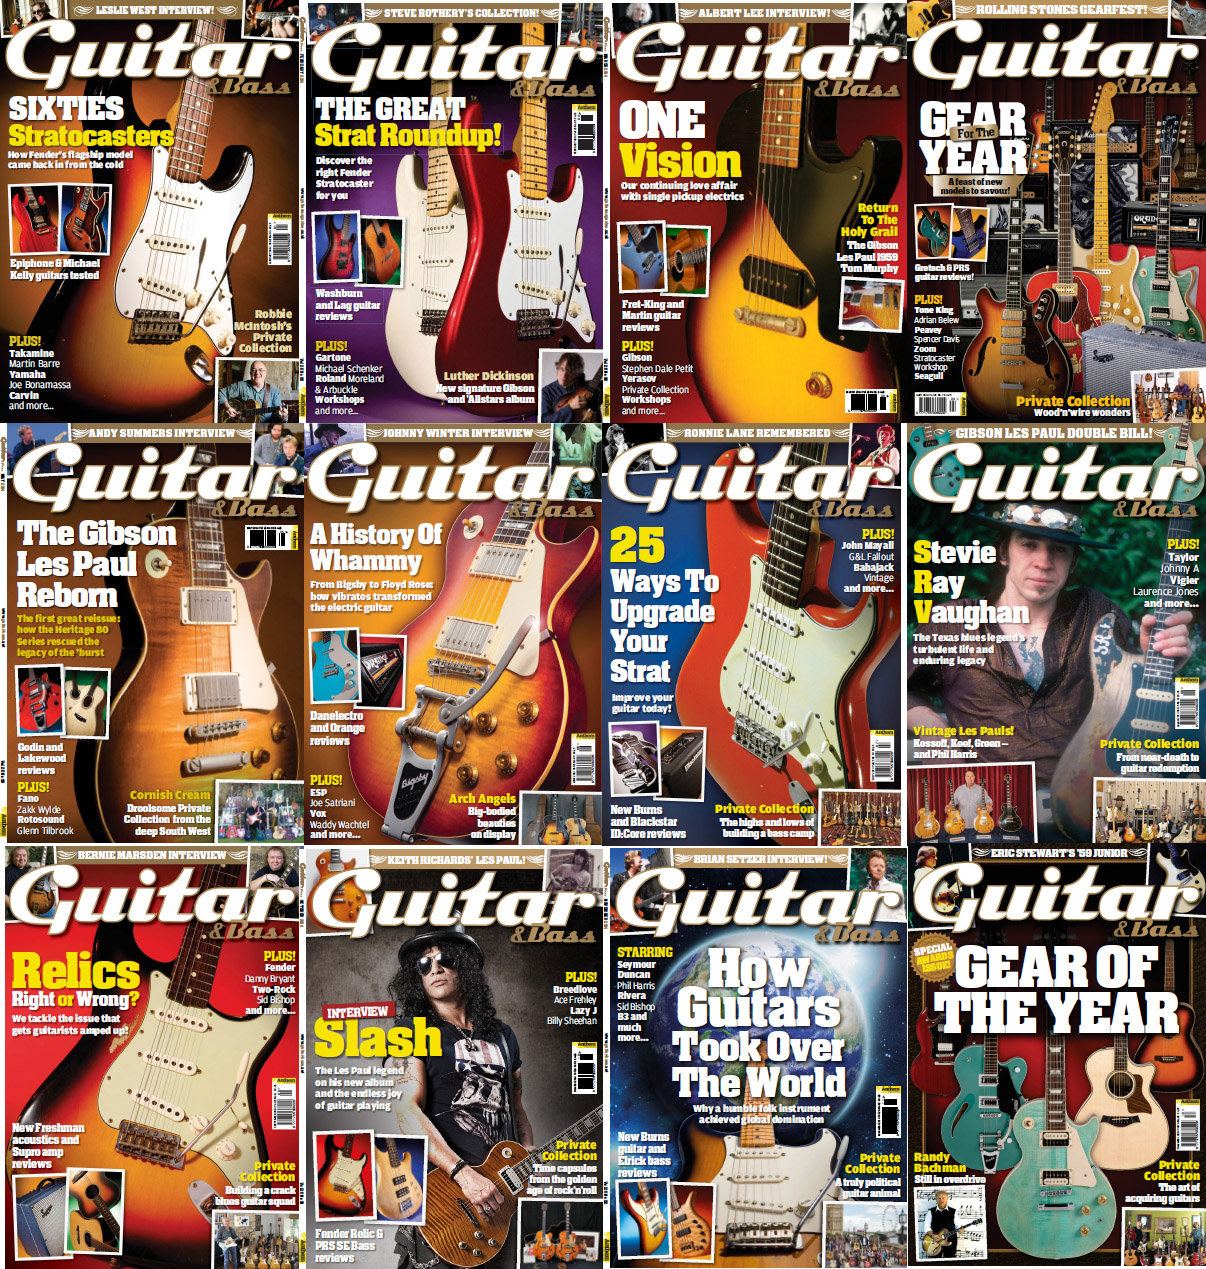 Guitar & Bass Magazine - Full Year 2014 Issues Collection